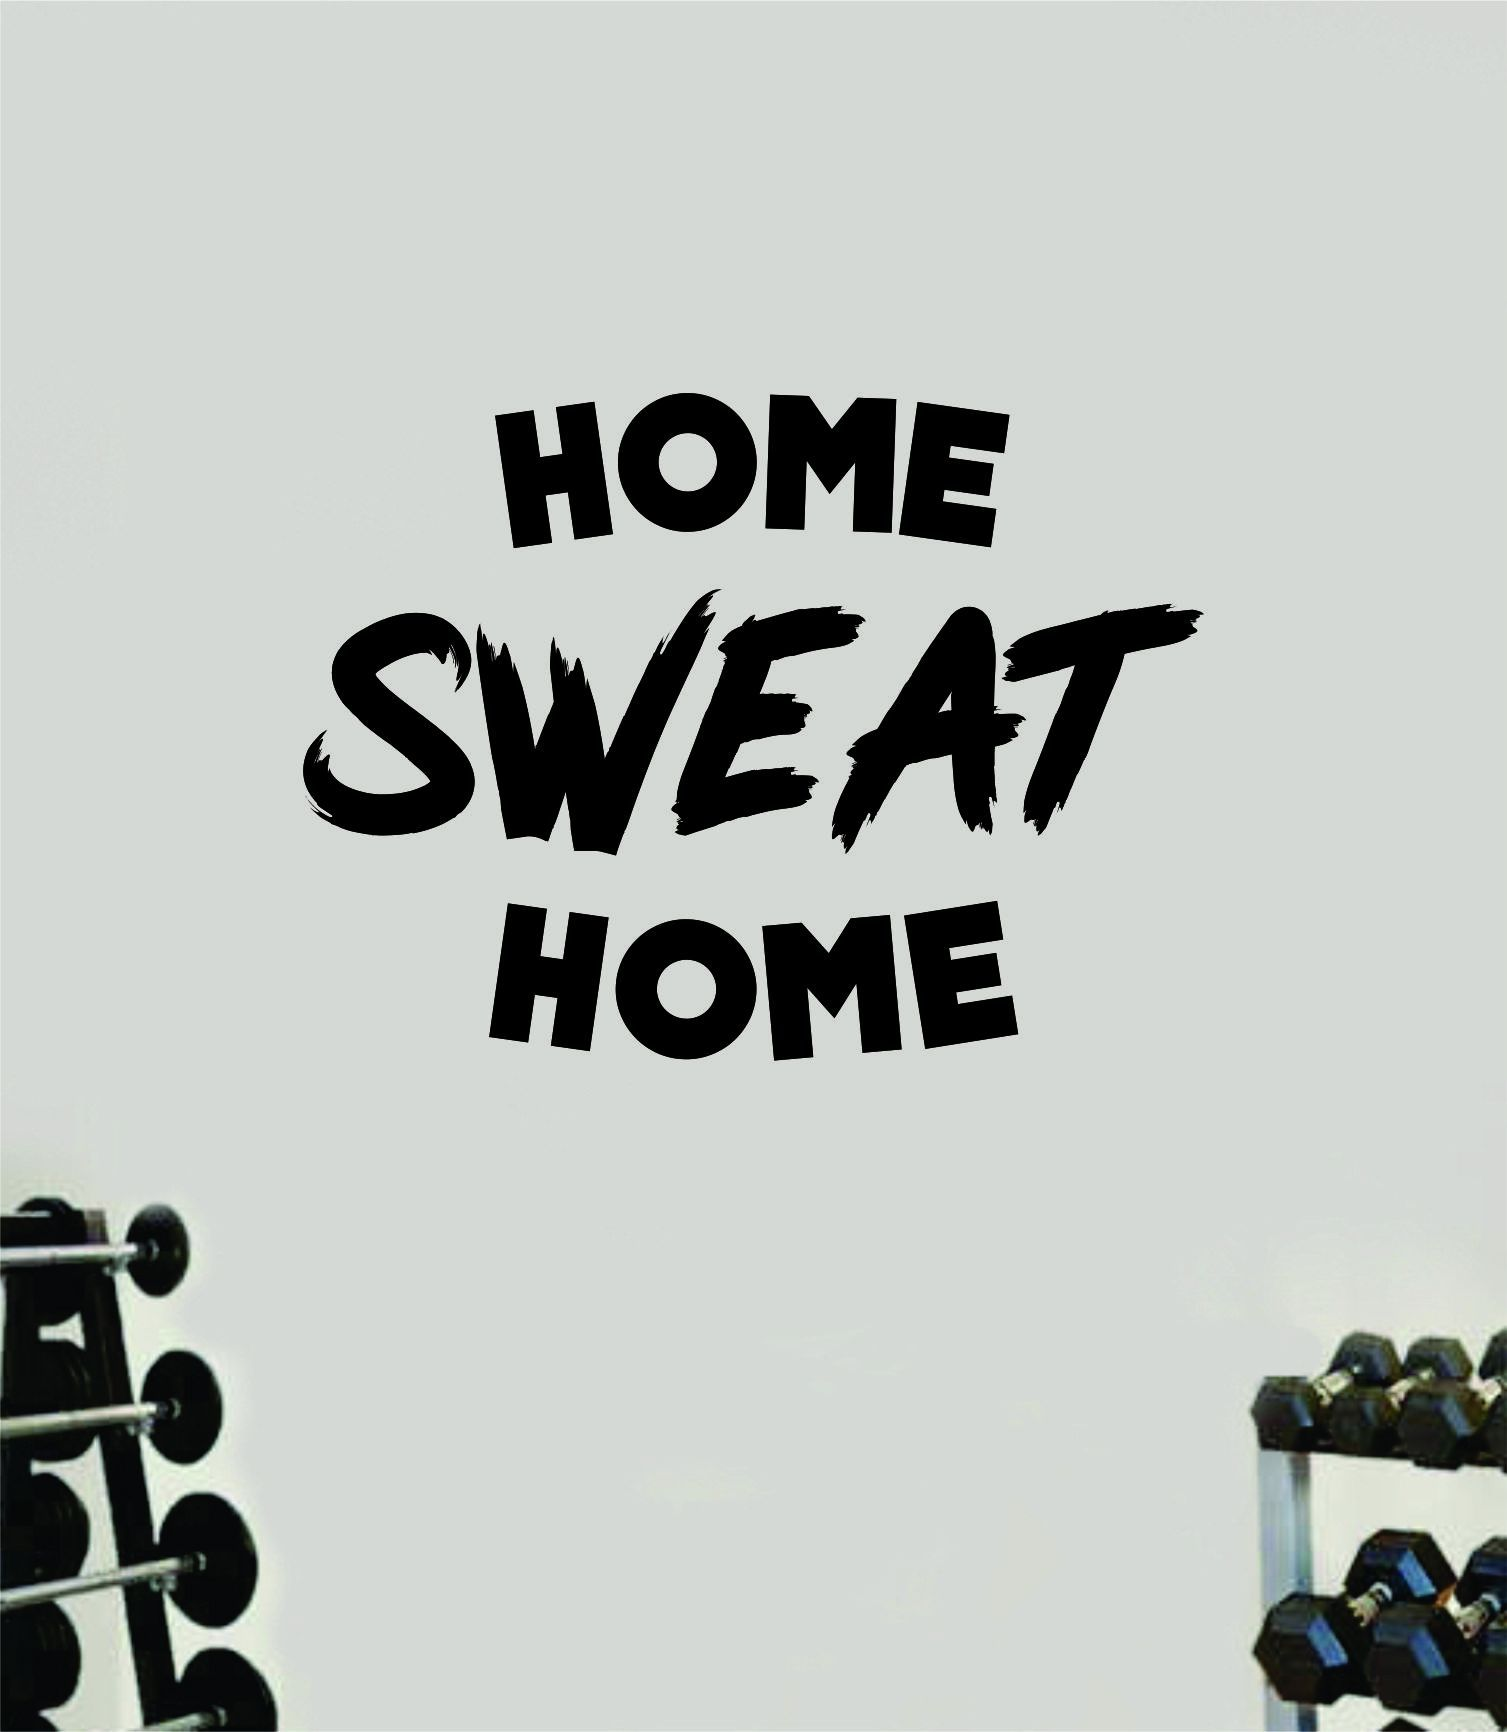 Home Sweat Home Wall Decal Home Decor Bedroom Room Vinyl Sticker Art Work Out Quote Beast Gym Fitness Lift Strong Inspirational Motivational Health Girls - black